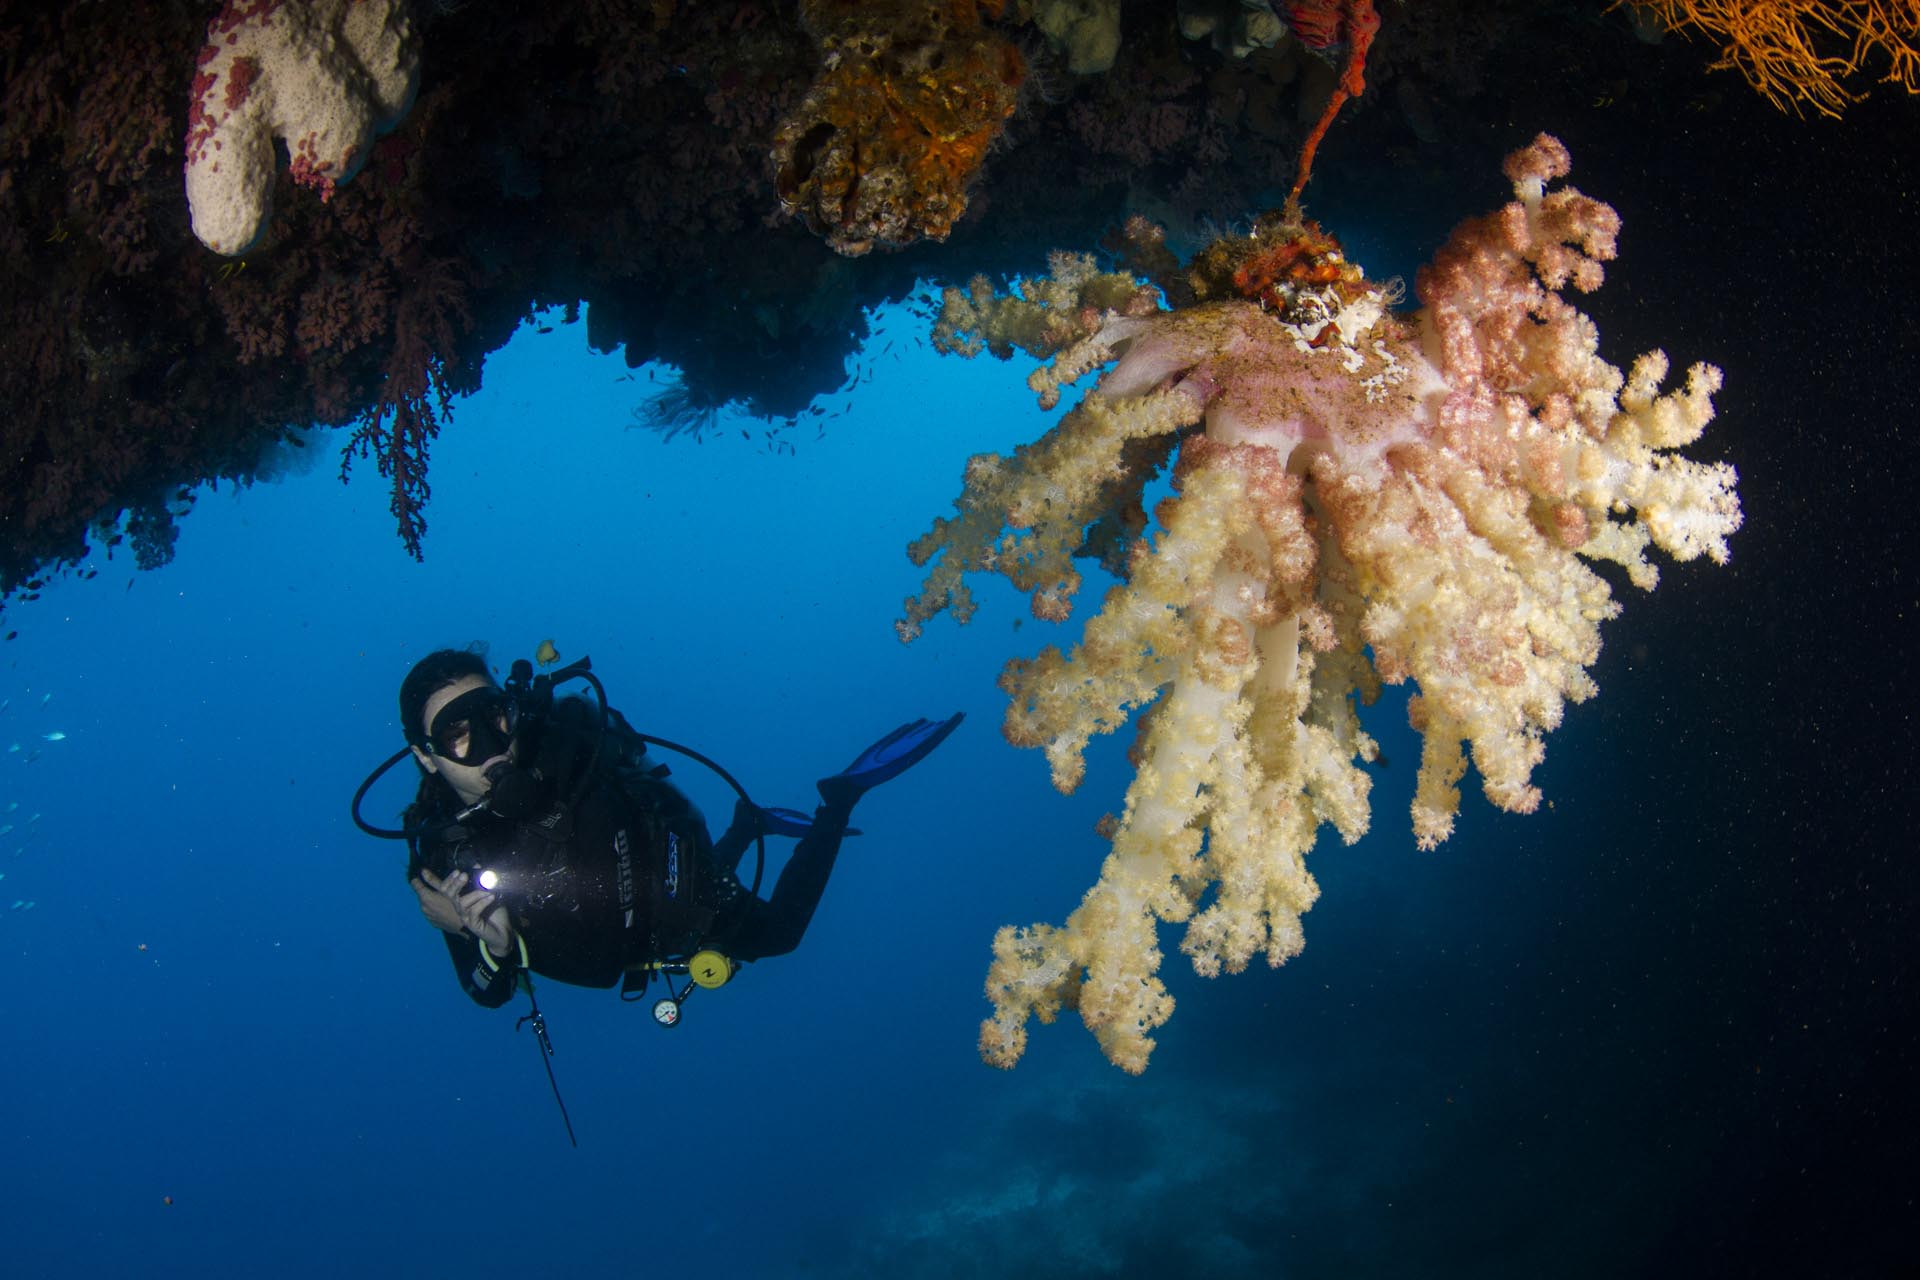 diver in underwater cave looking at coral